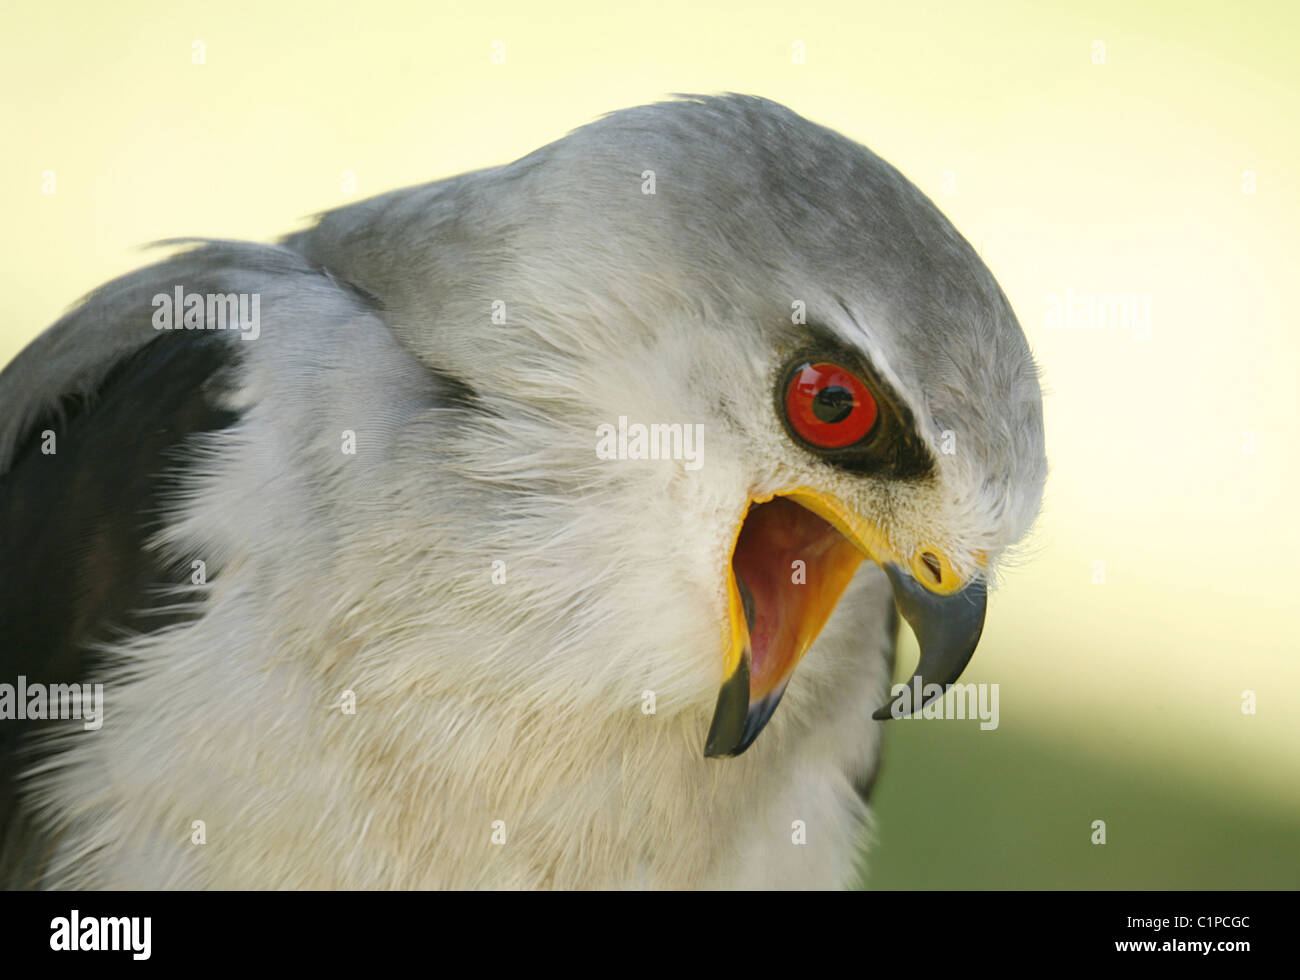 Picture of  a black shouldered kite with mouth open, Spier, Eagle Encounters, South Africa. - Stock Image